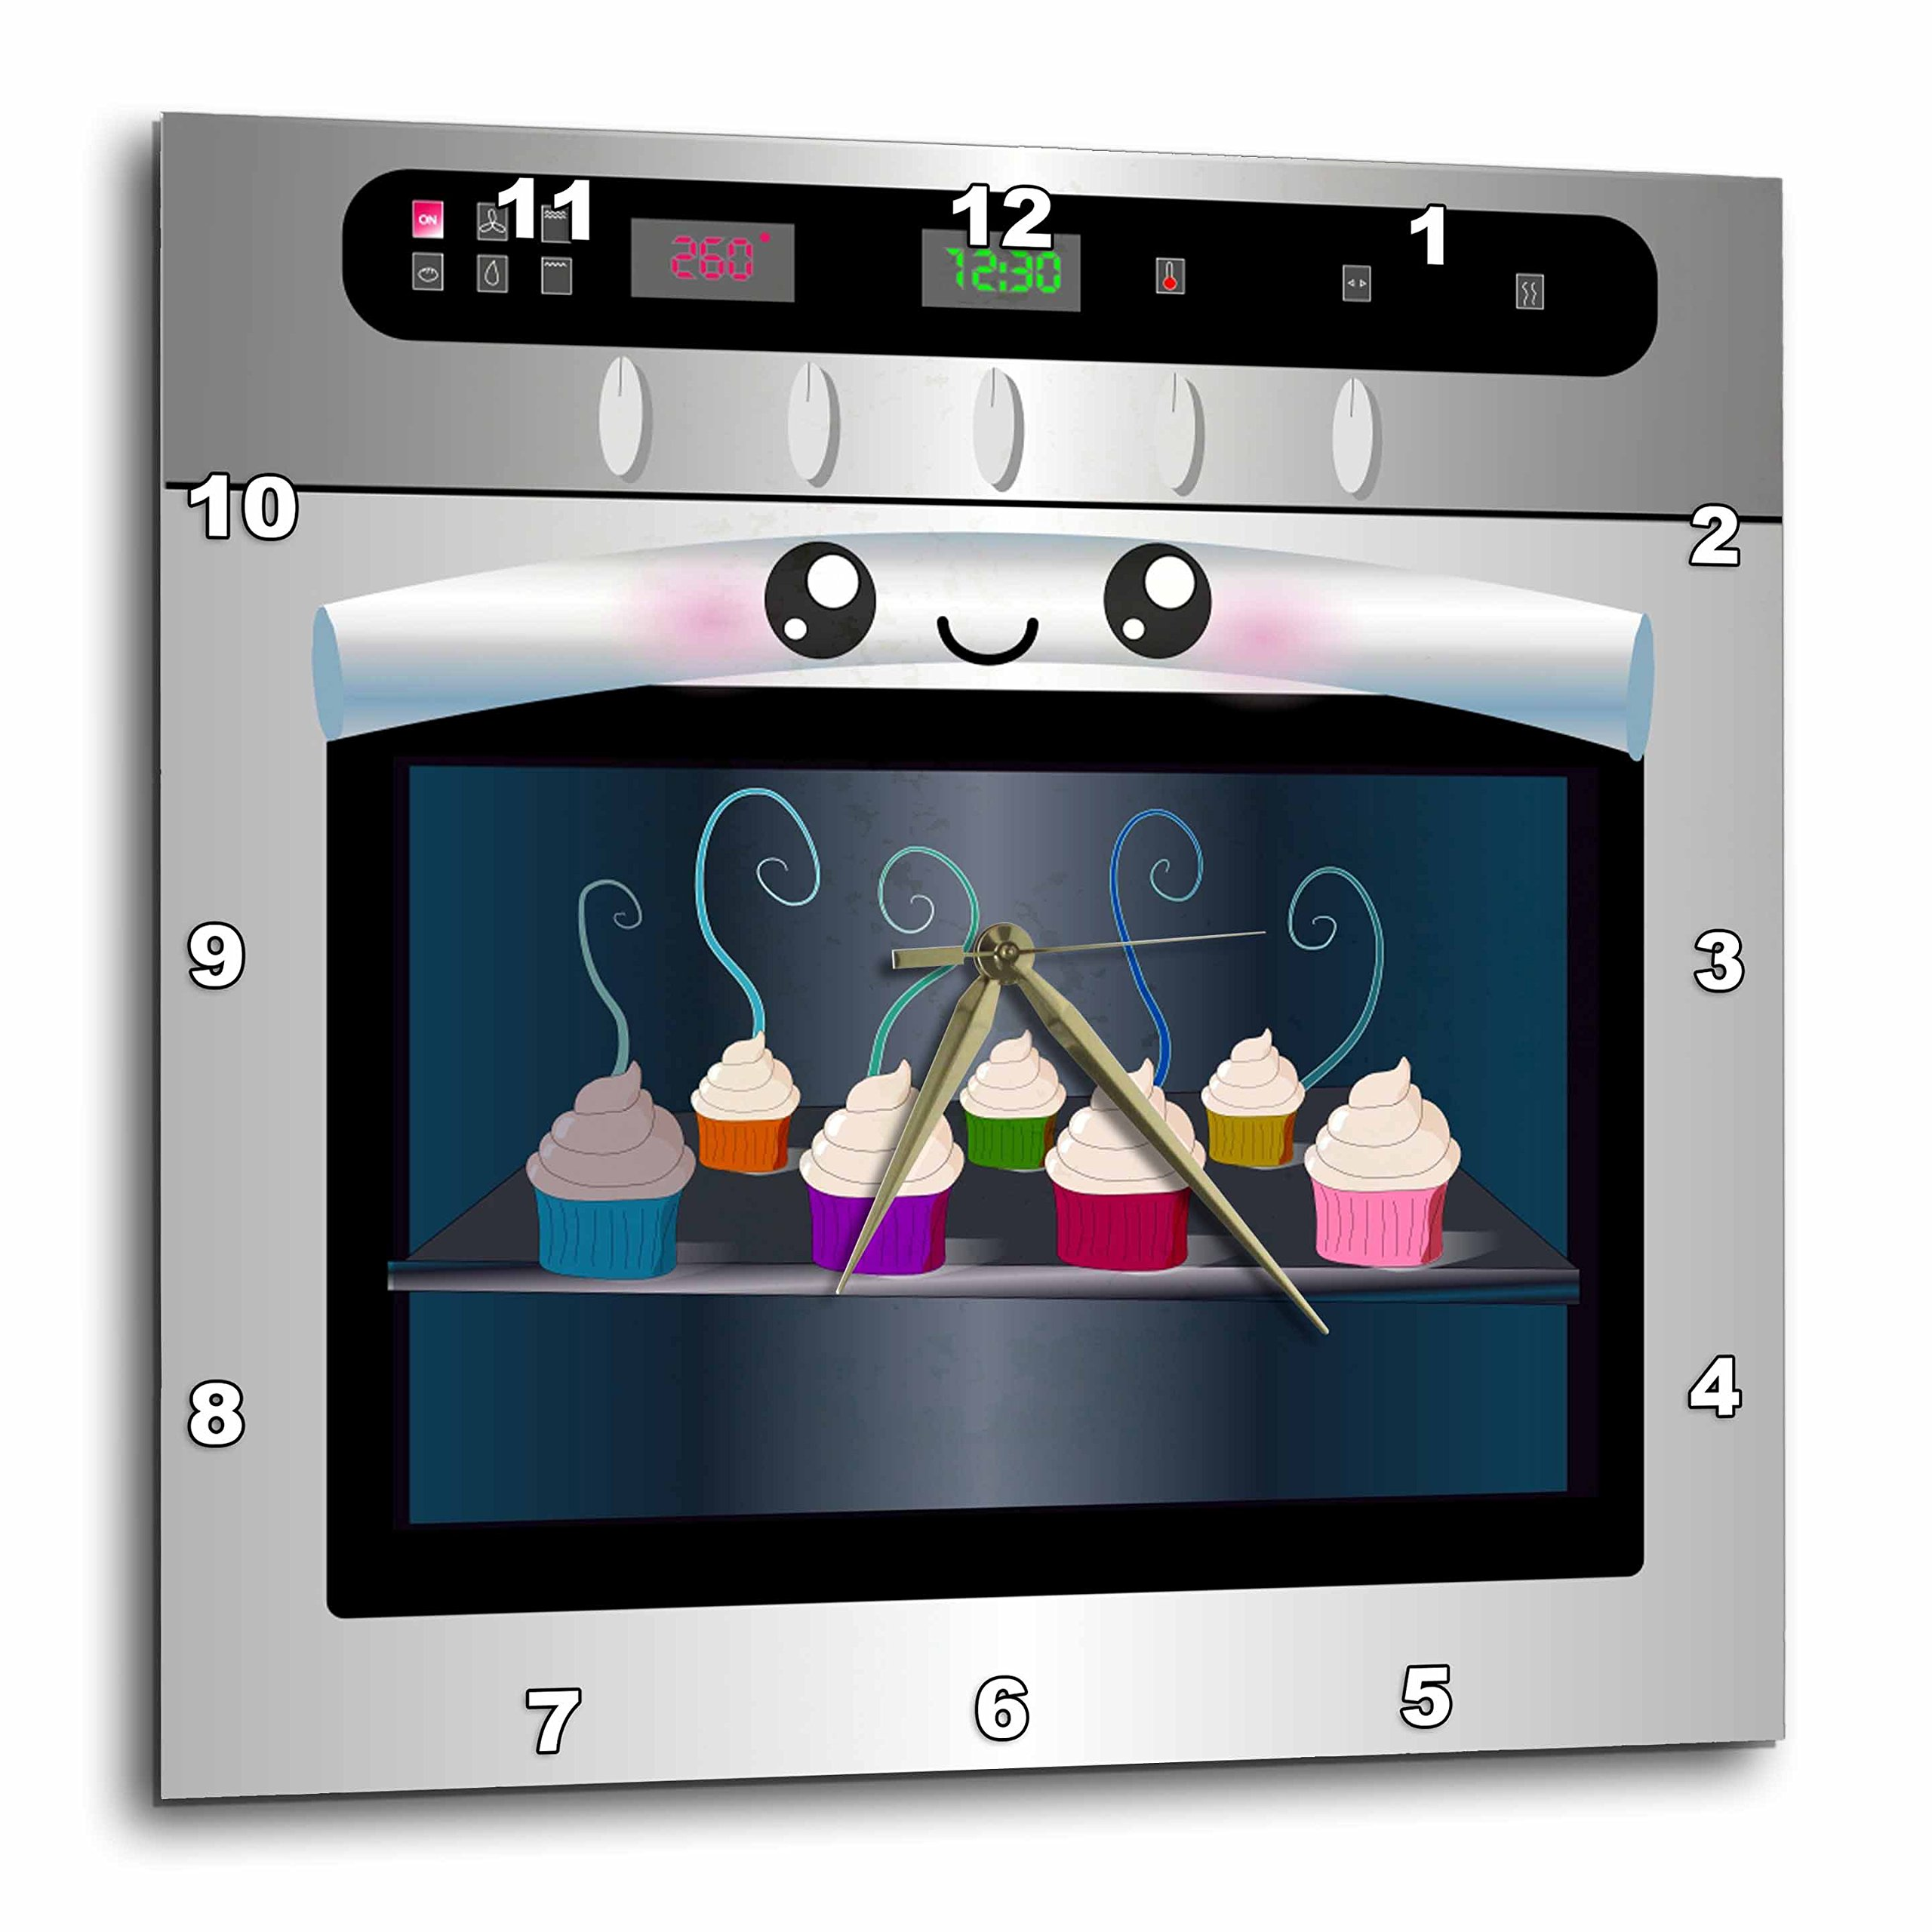 3dRose DPP_58309_1 Cute Kawaii Happy Smiling Oven Filled with Baking Cupcakes for Chefs Foodies and Cooking Fans Wall Clock, 10 by 10-Inch by 3dRose